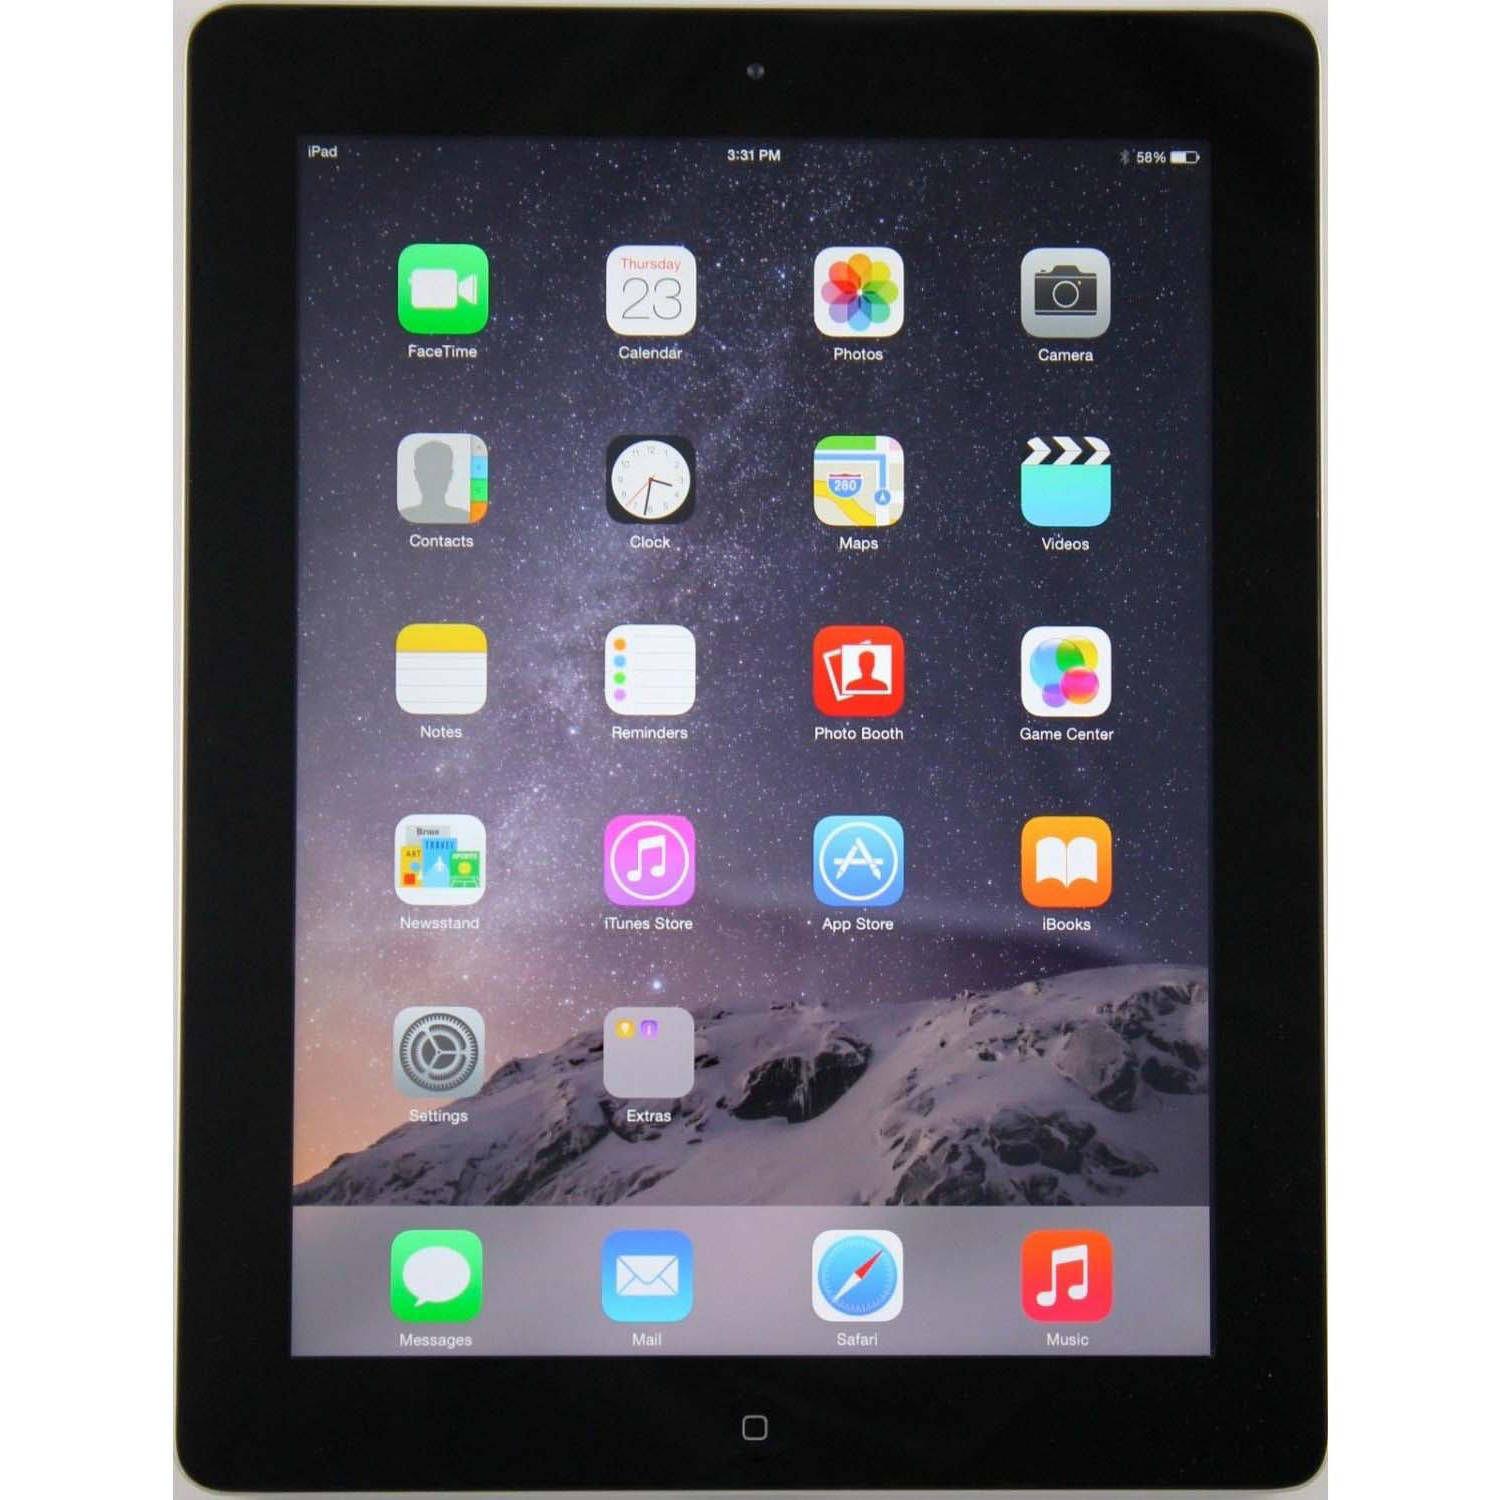 Apple iPad 2 16GB Black + AT&T Refurbished